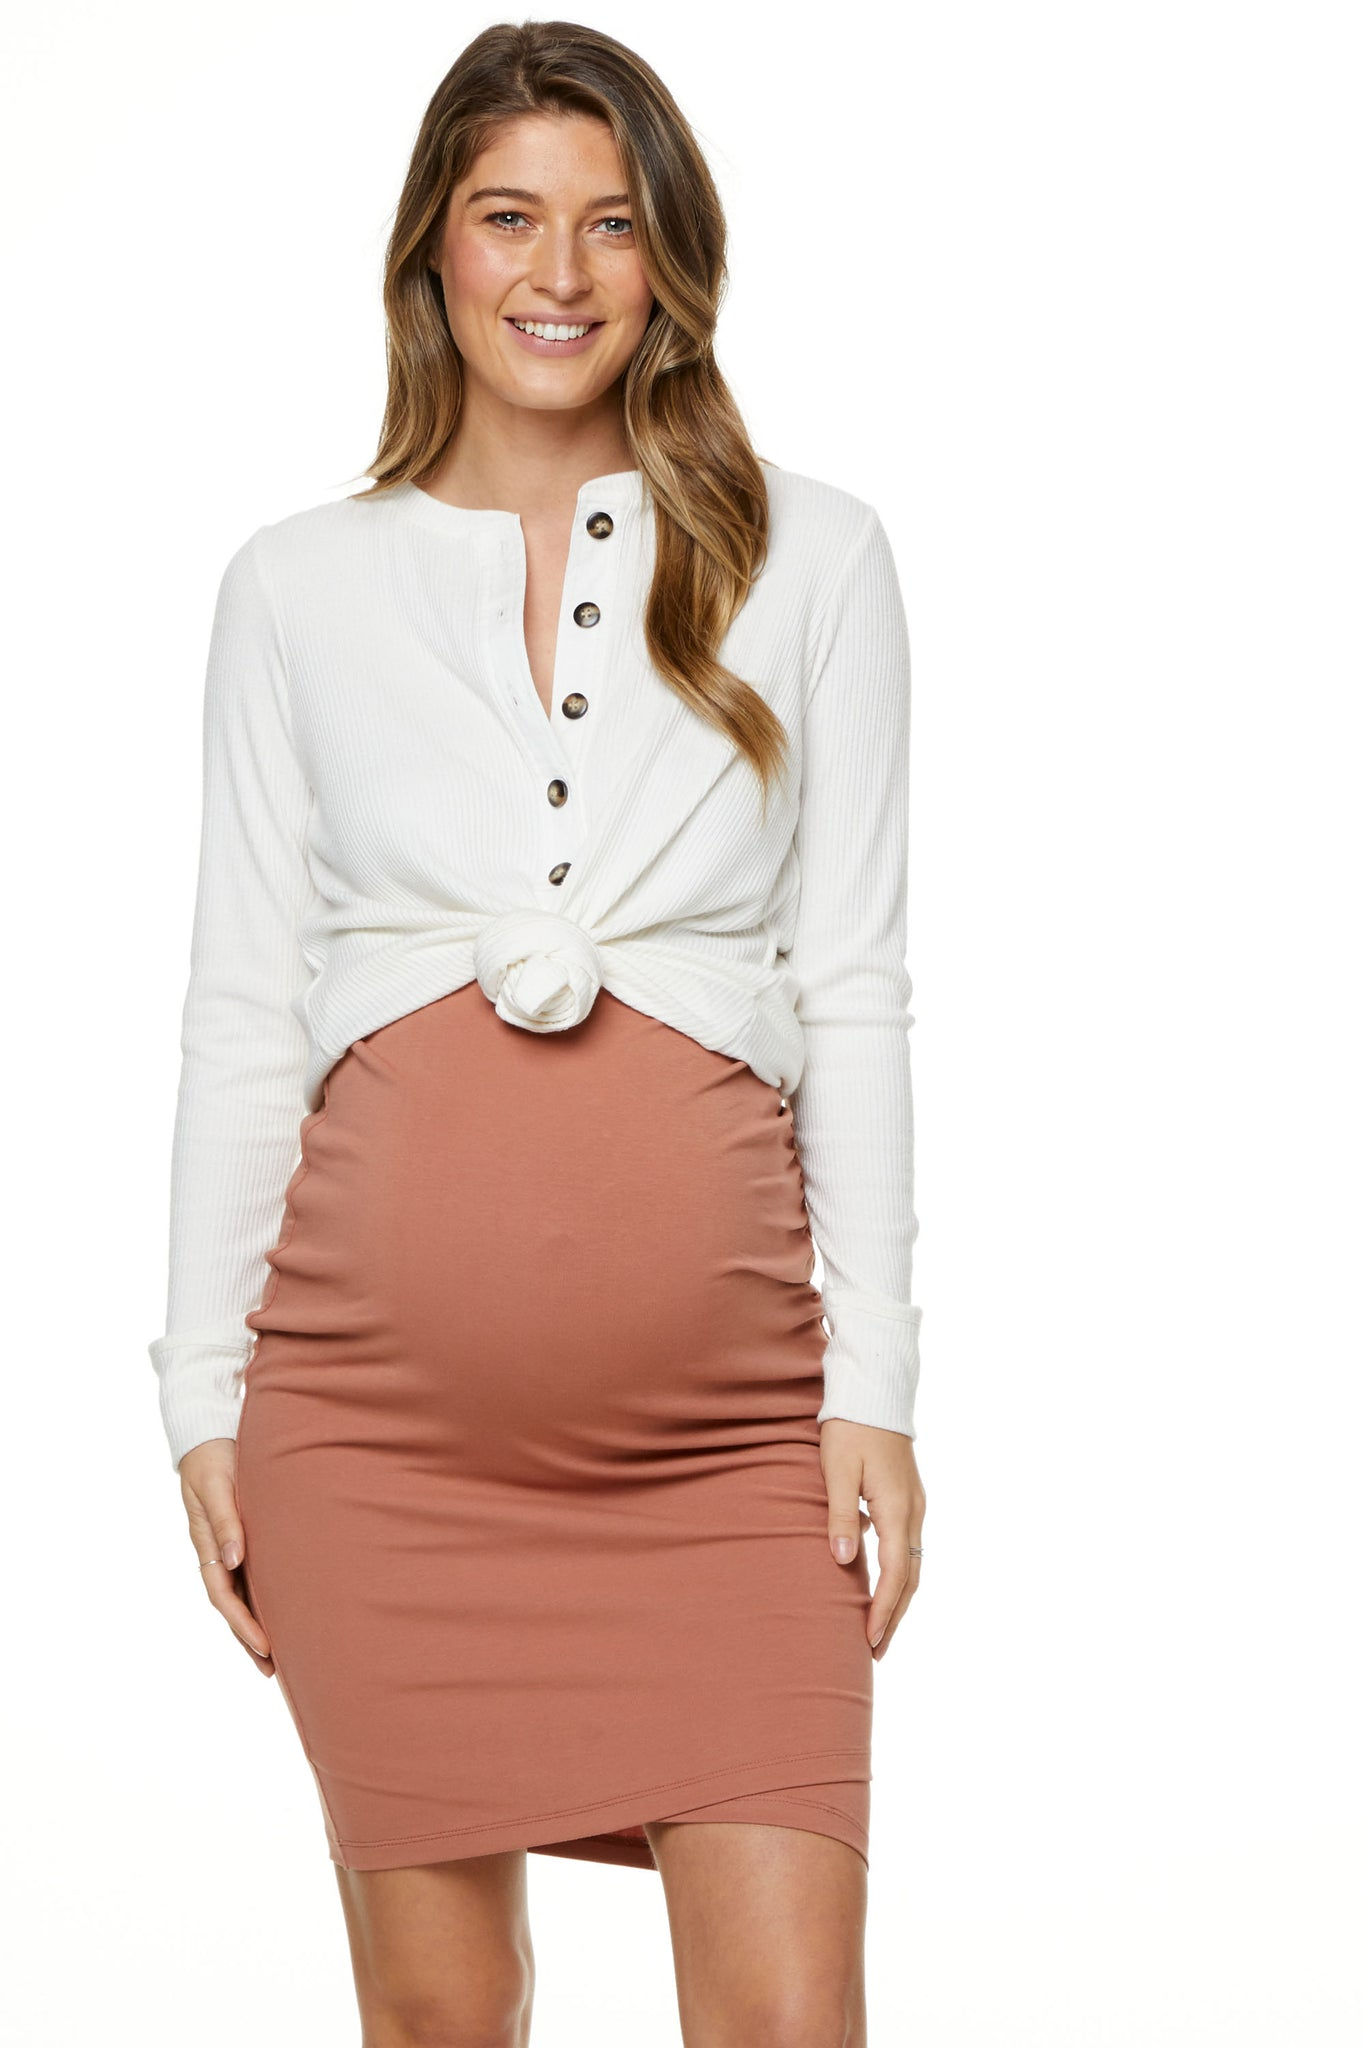 Bodycon Maternity Skirt Image 2